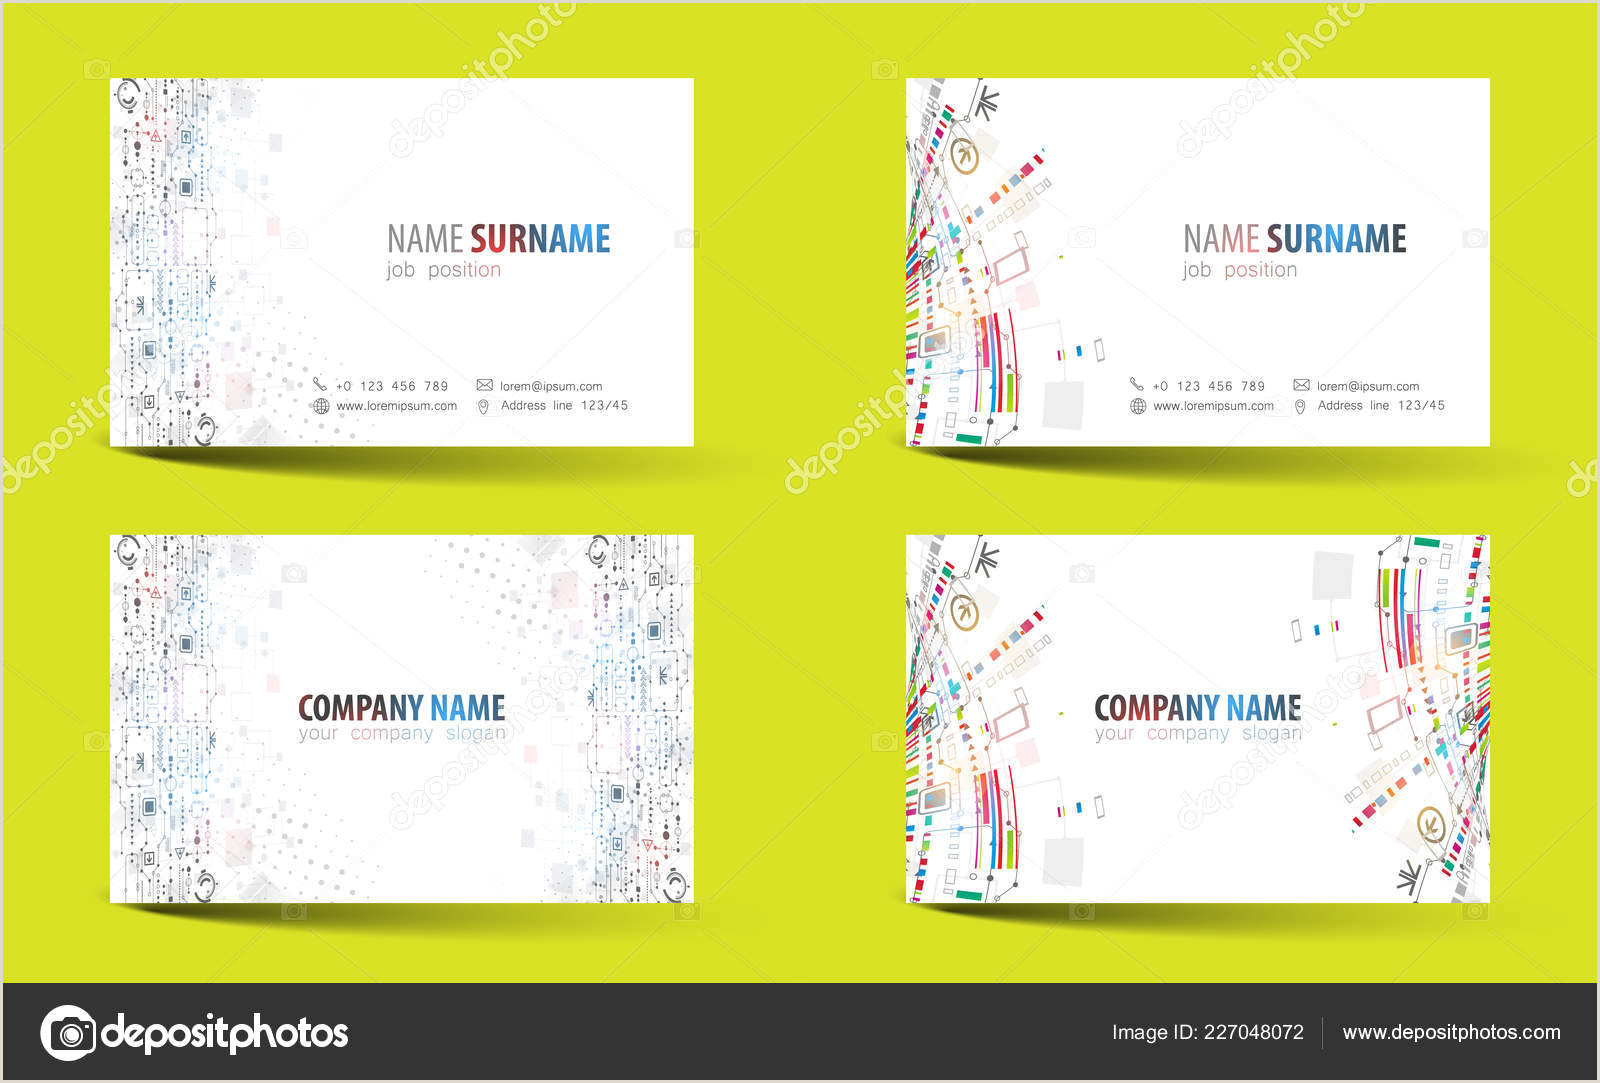 Best Business Cards Images Shaped Creative Double Sided Business Card Template Vector